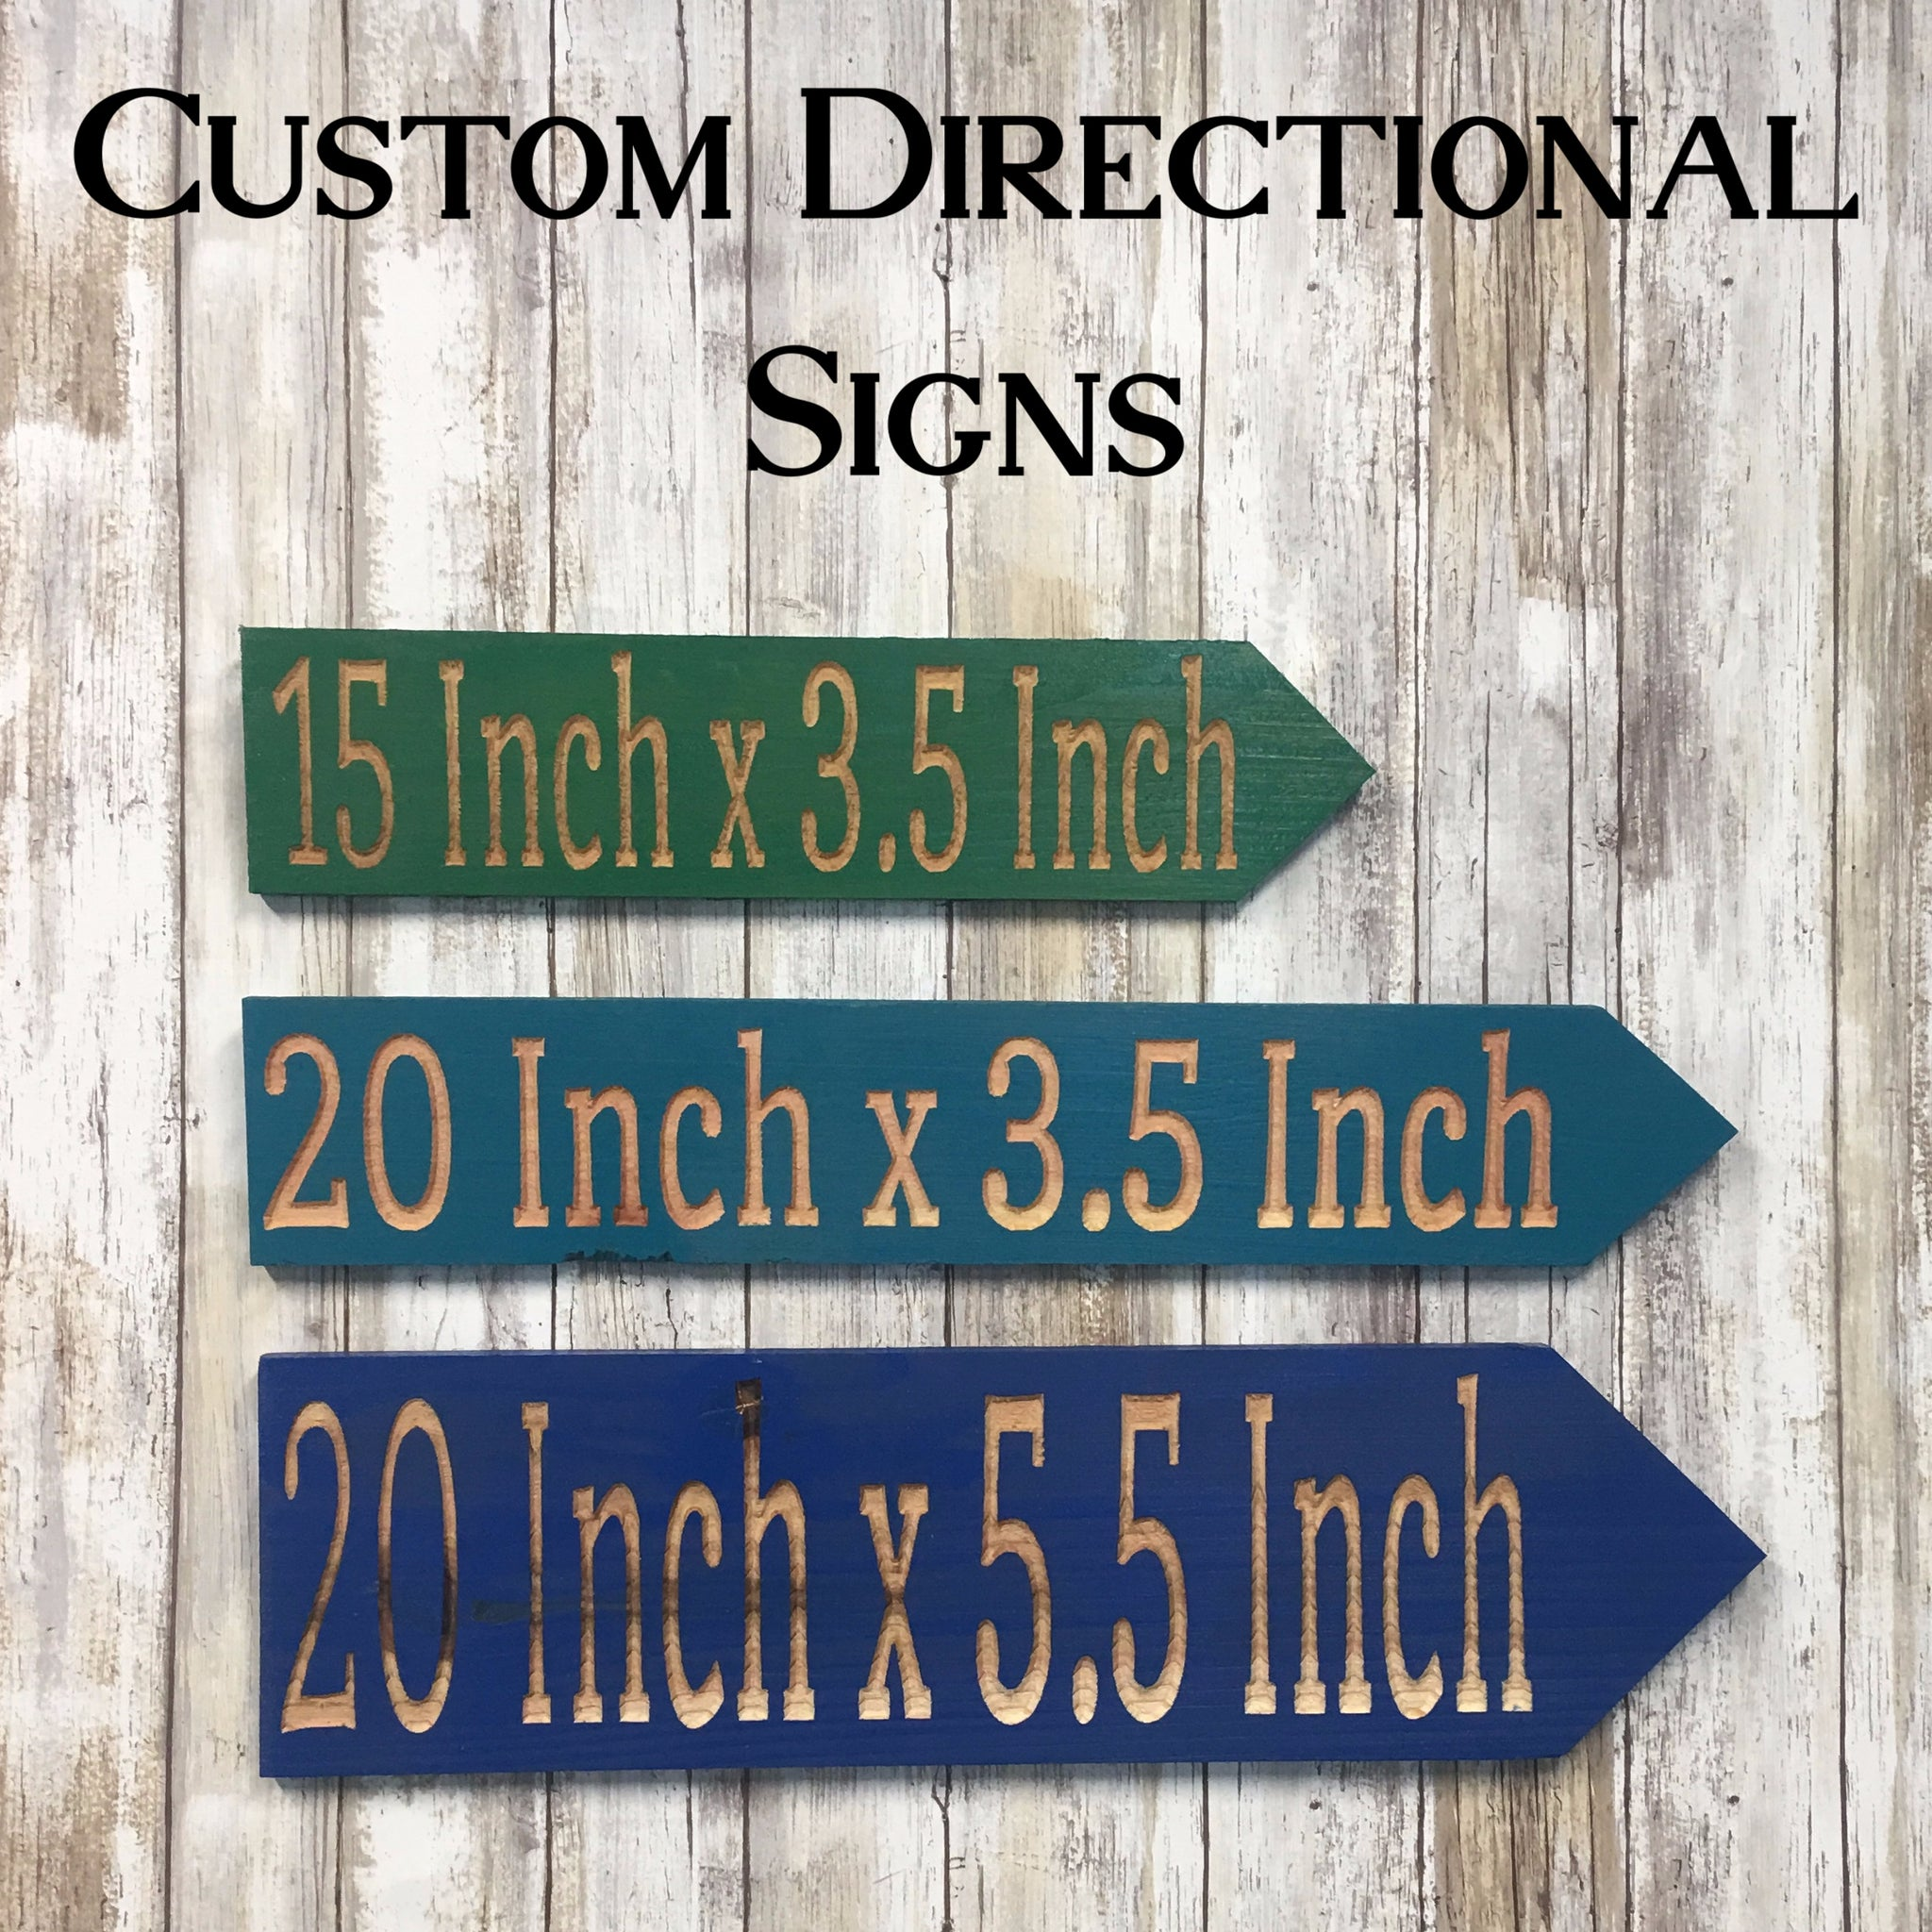 Design Your Own Directional Sign or Set - Customize Personalize